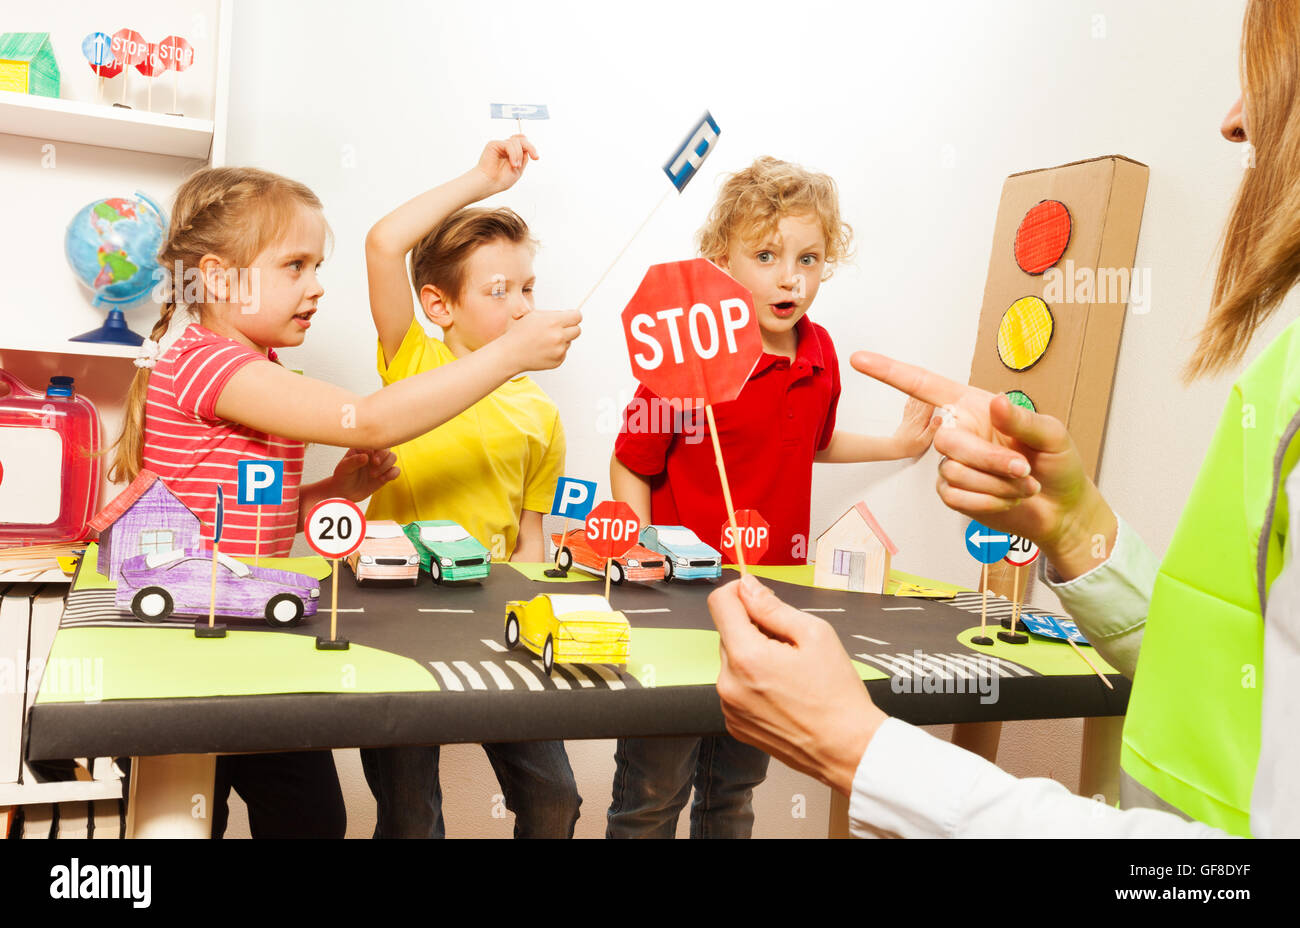 Cute Kids Having Fun Teaching Traffic Signs Stock Photo